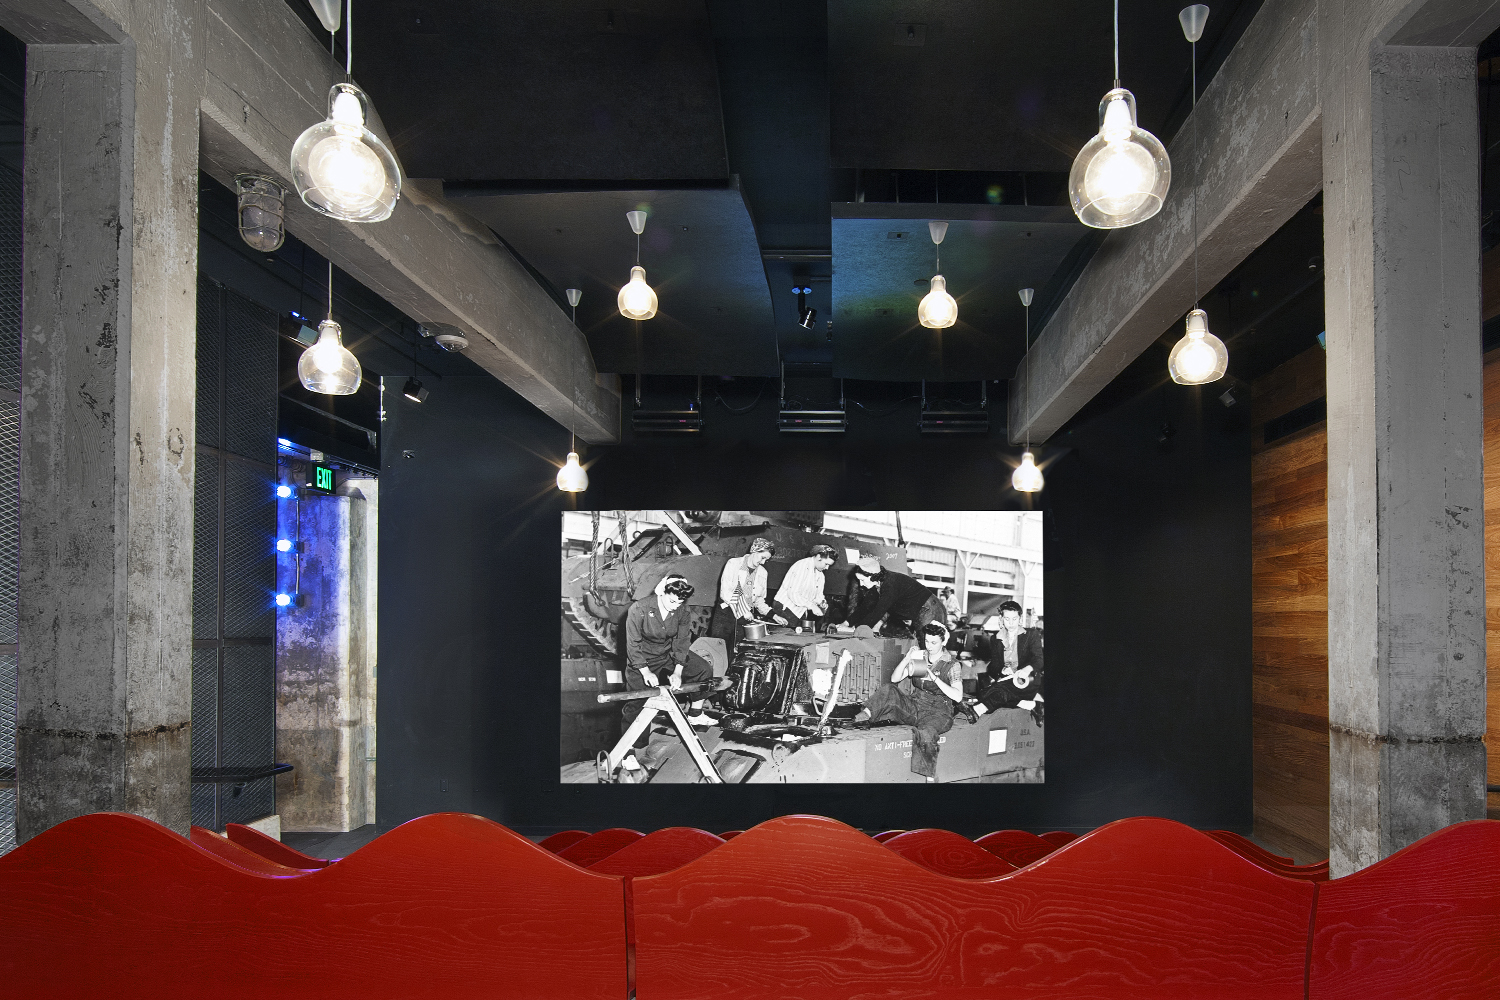 01_Projects_Rosie the Rivetor Visitor Center.jpg